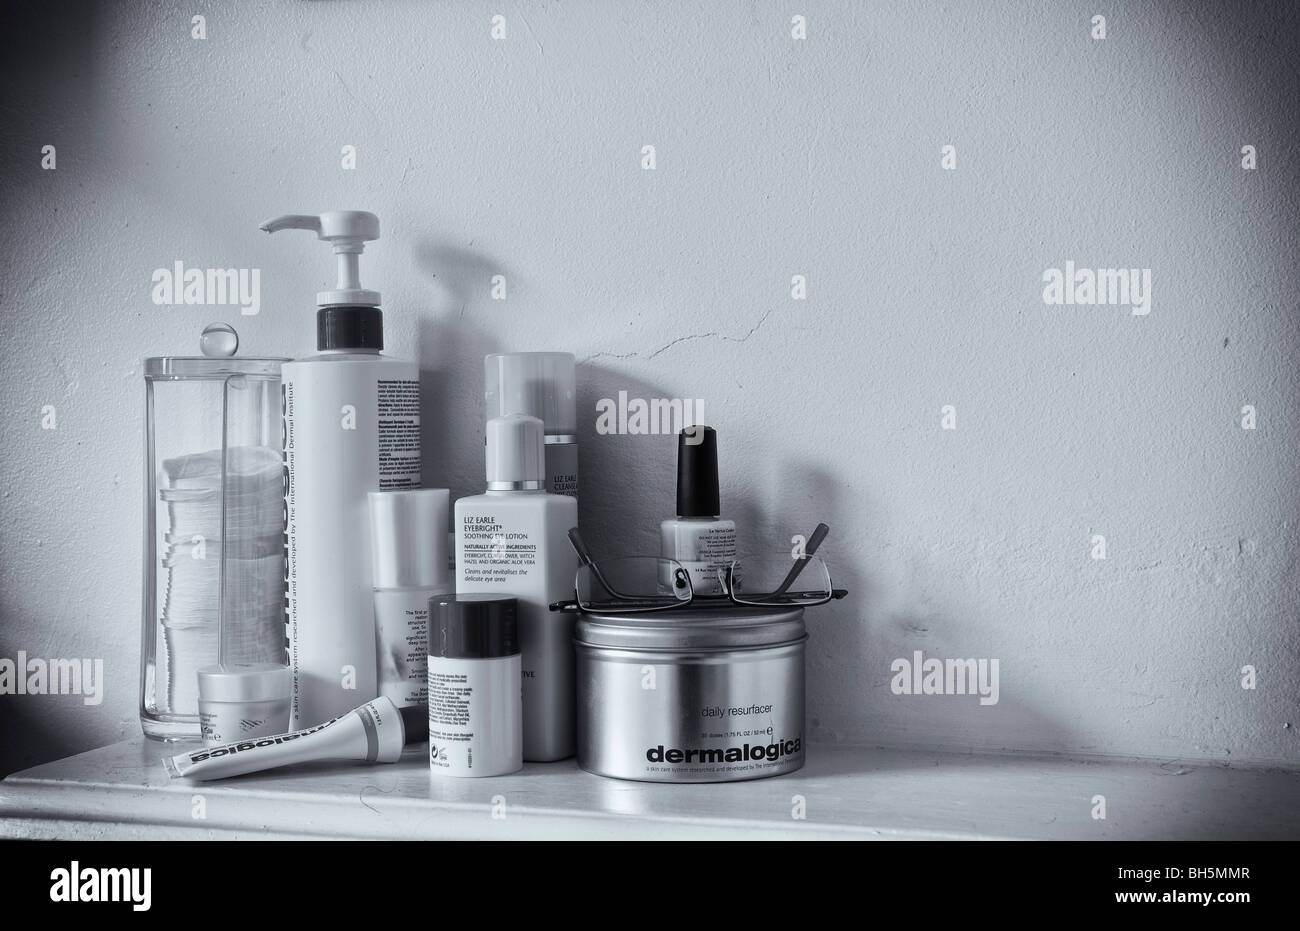 Beauty Products - Stock Image